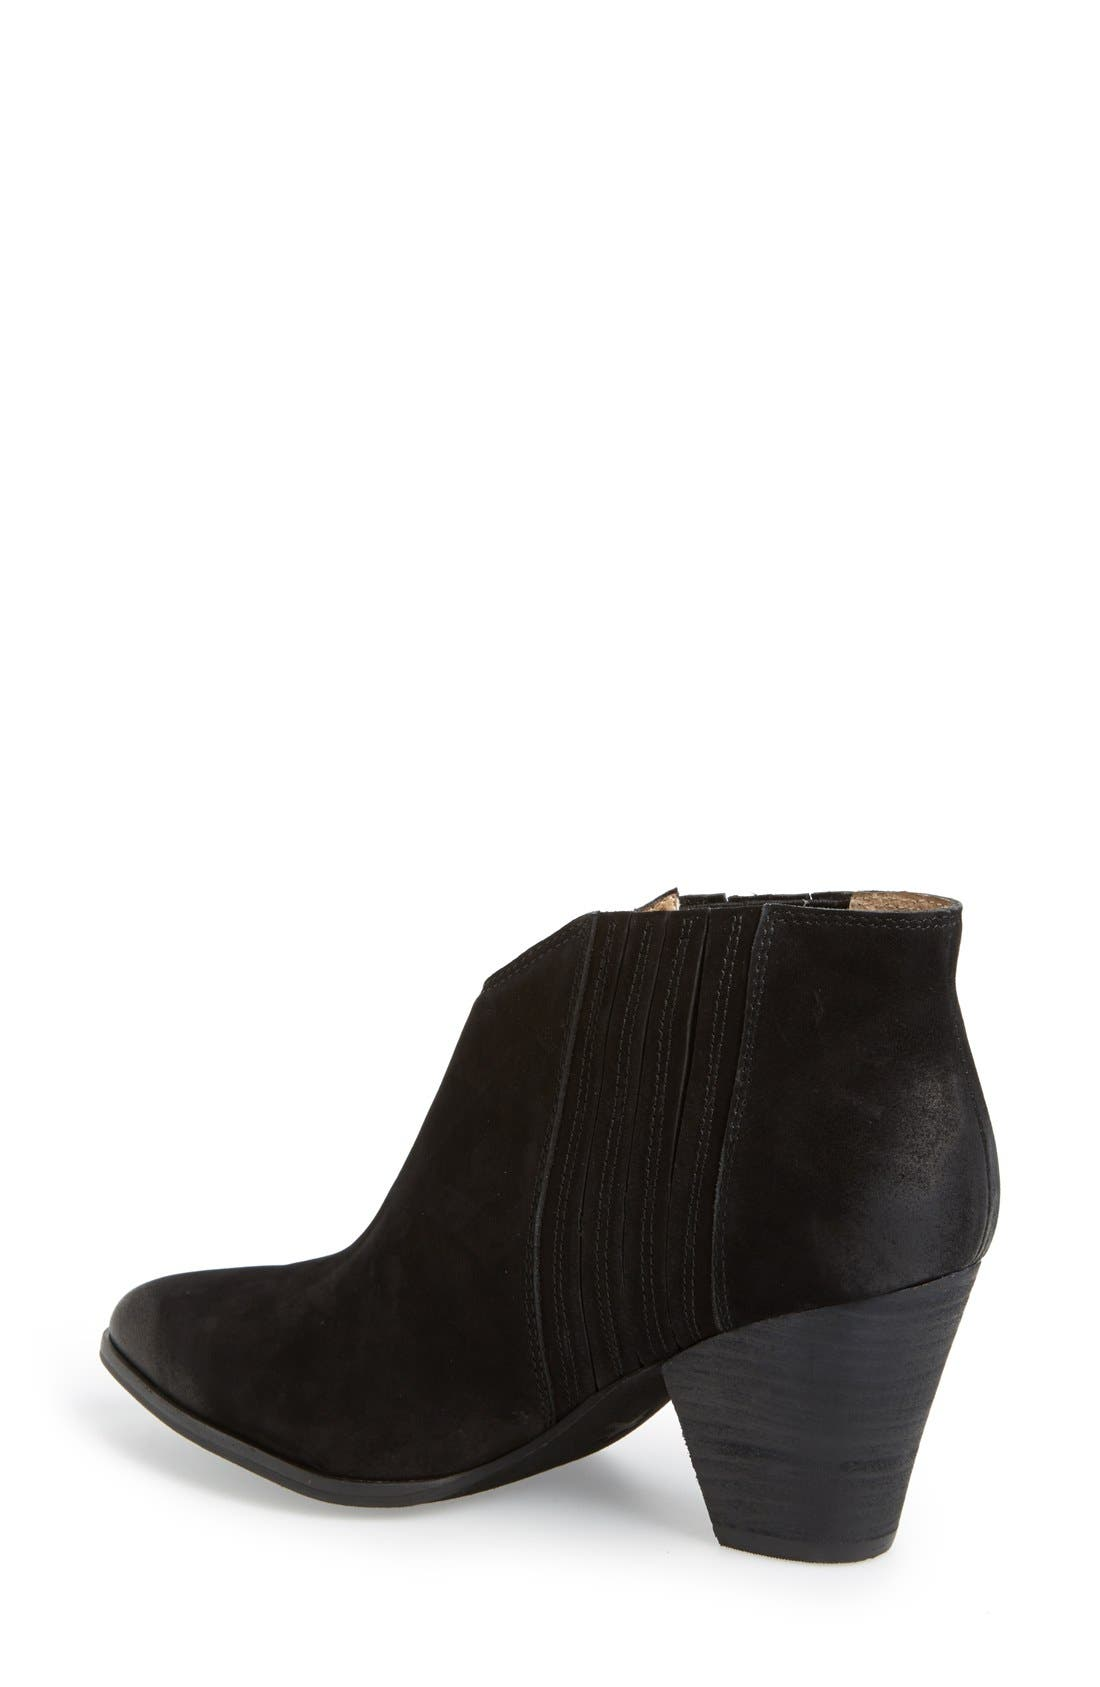 'Addie' Pointy Toe Ankle Bootie,                             Alternate thumbnail 9, color,